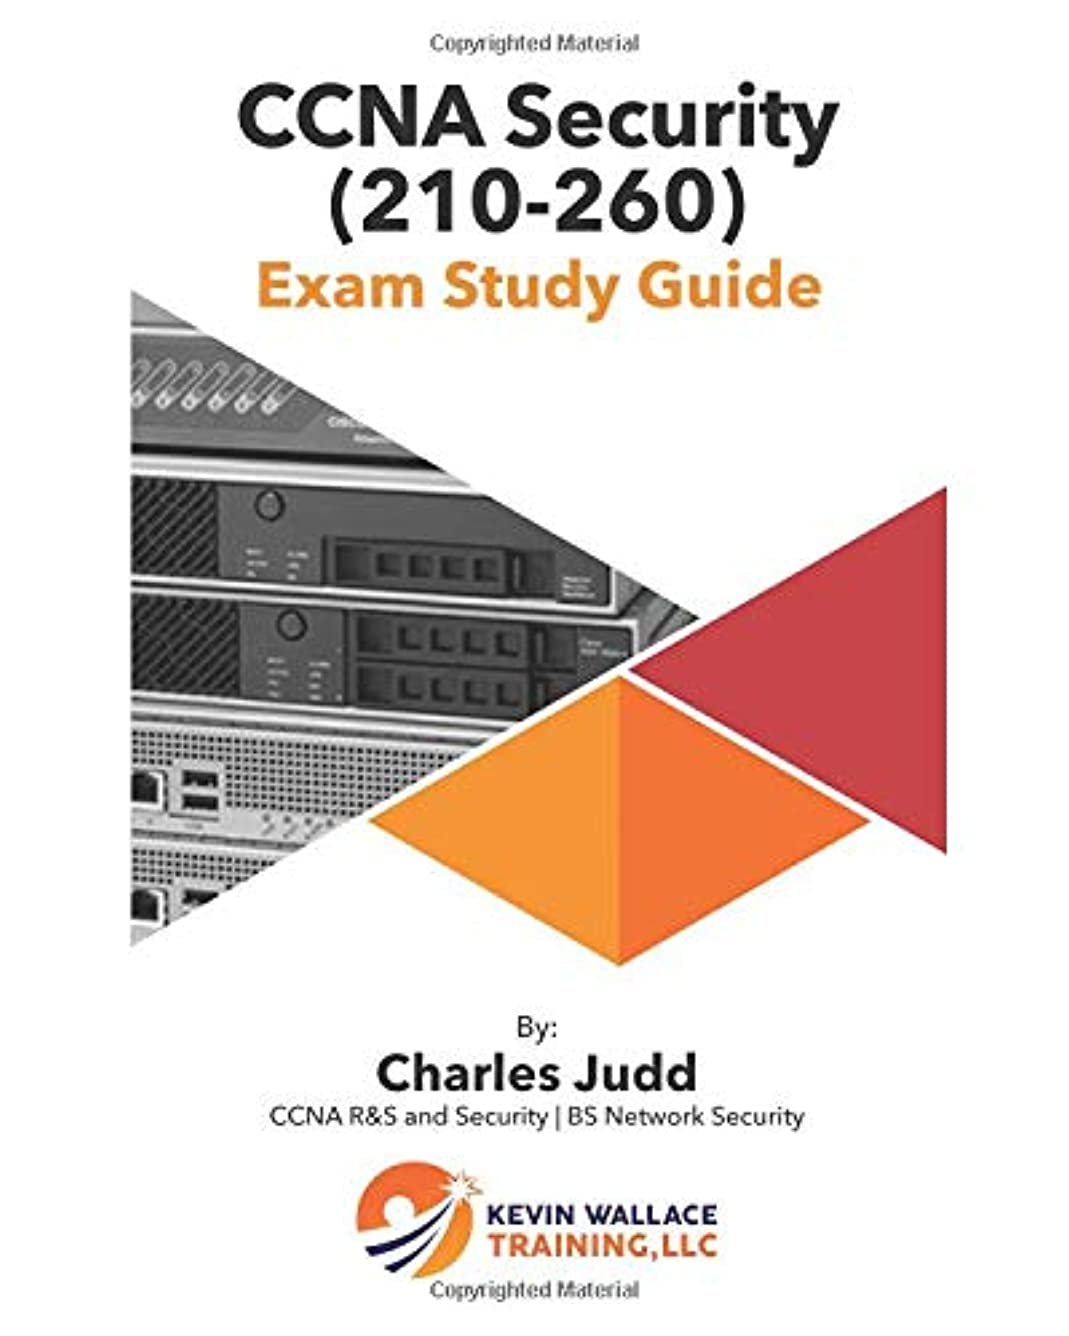 ビルダー強いまもなくCCNA Security (210-260) Exam Study Guide